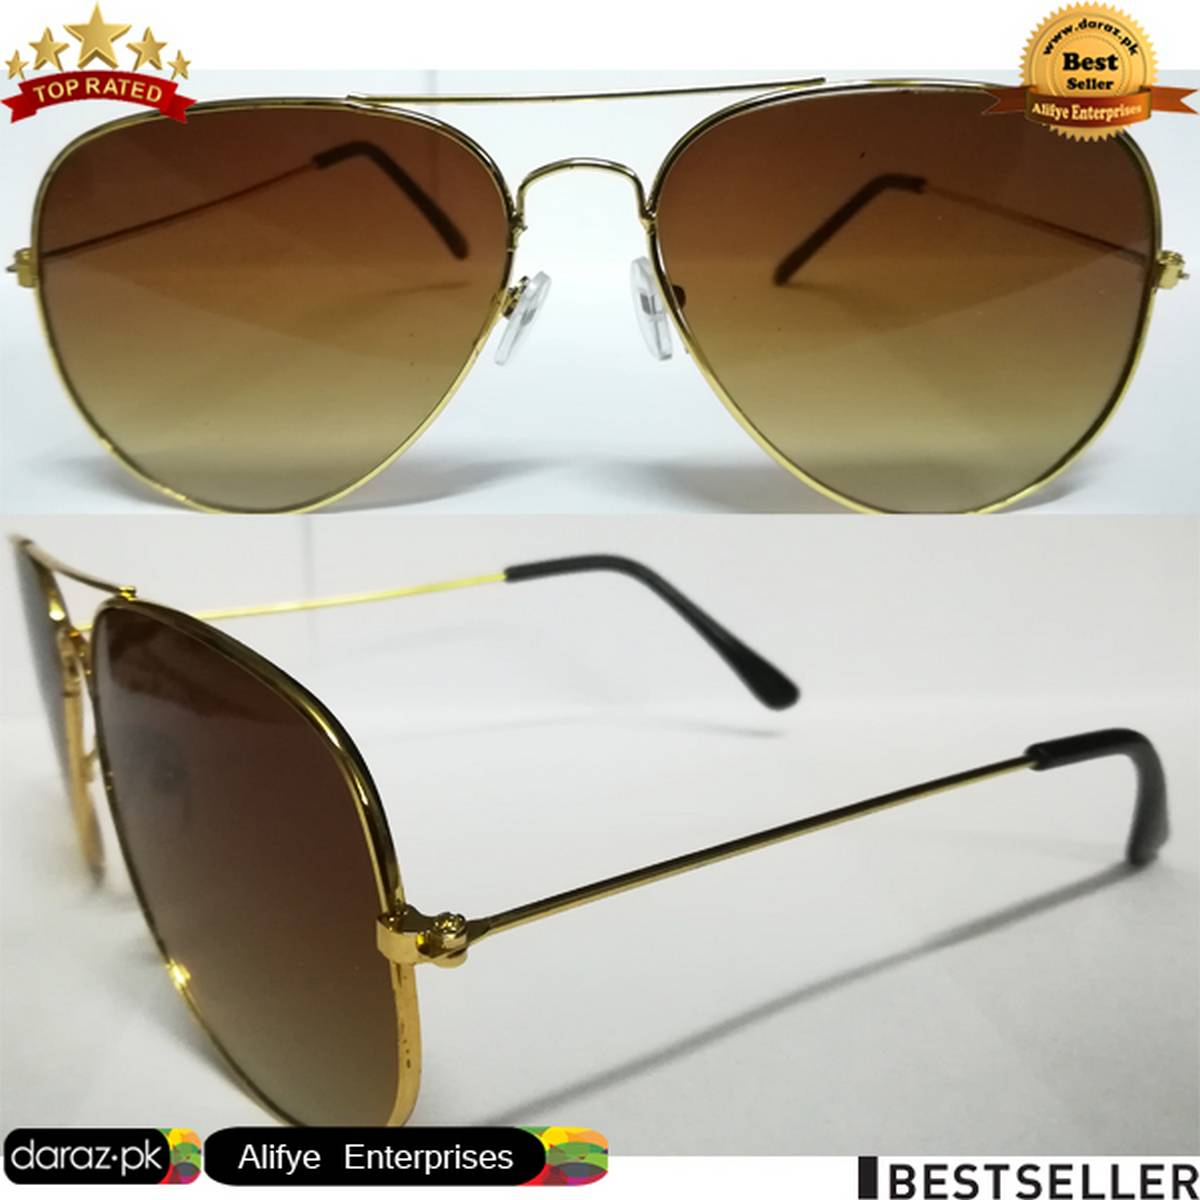 Night Vision Glasses Aviator Style Shape Double Shade Day Night Glasses Mens Women Sunglasses - Brown Golden